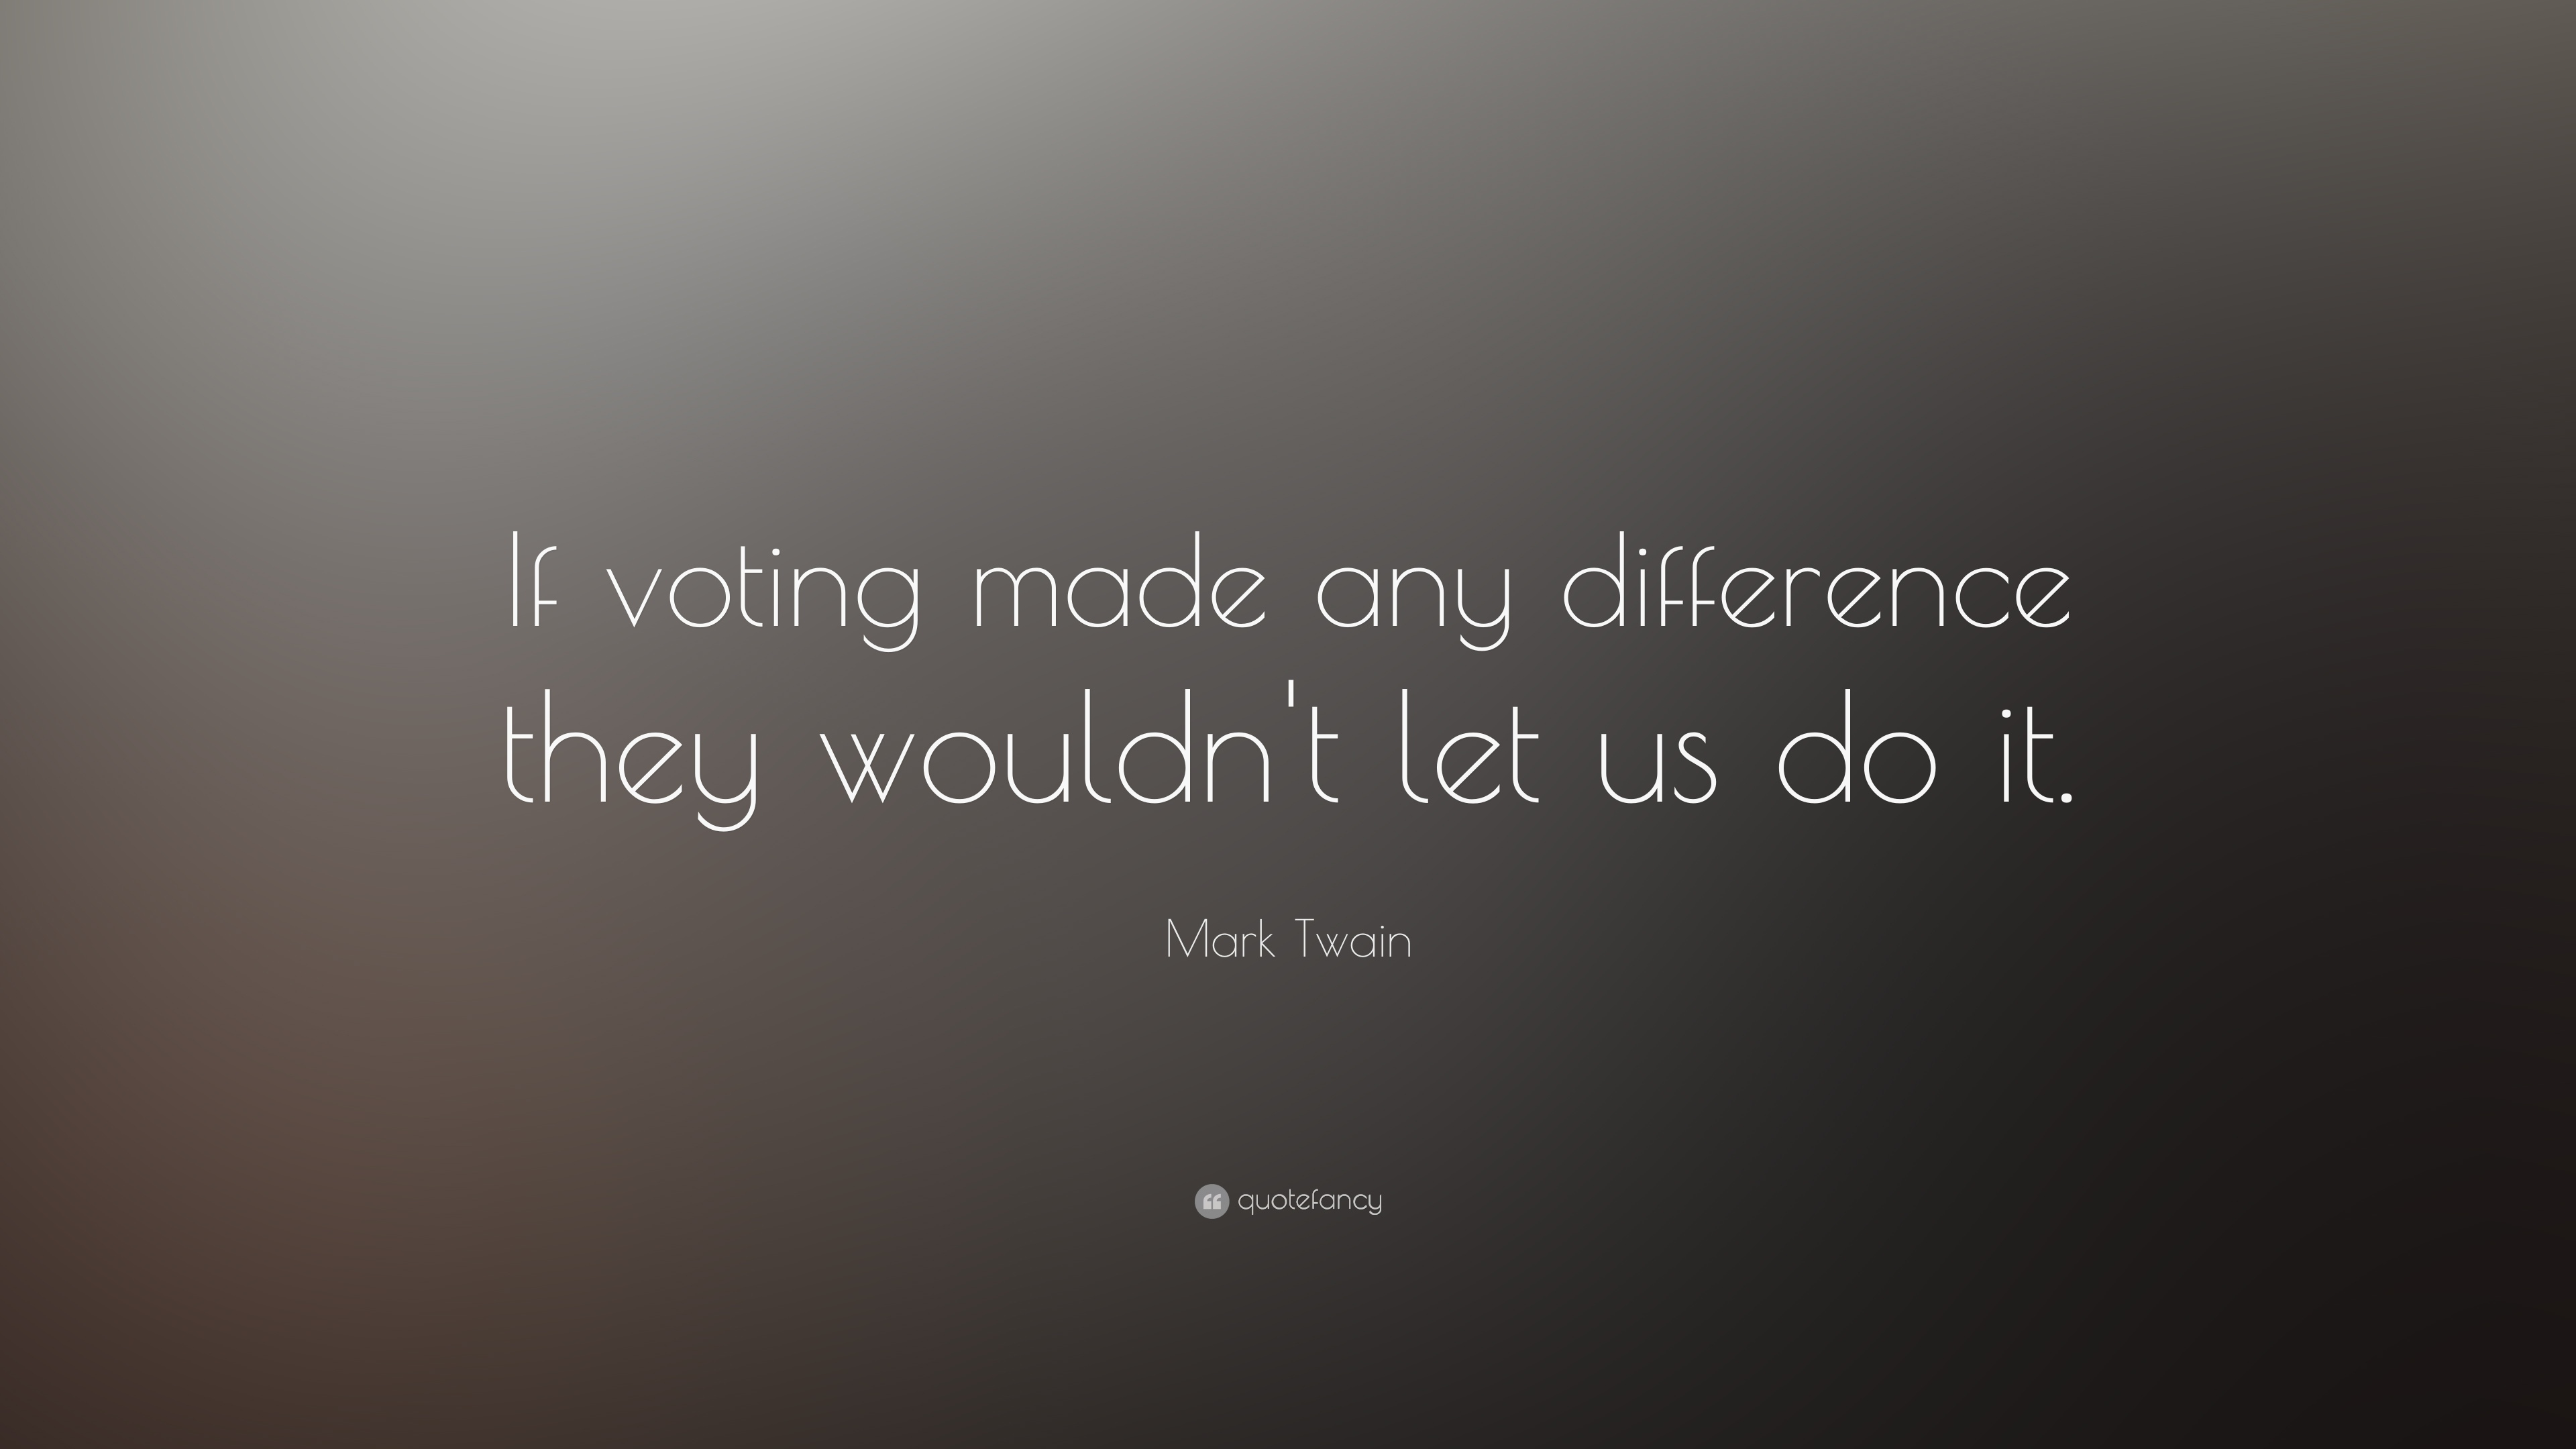 Mark Twain Voting Quote